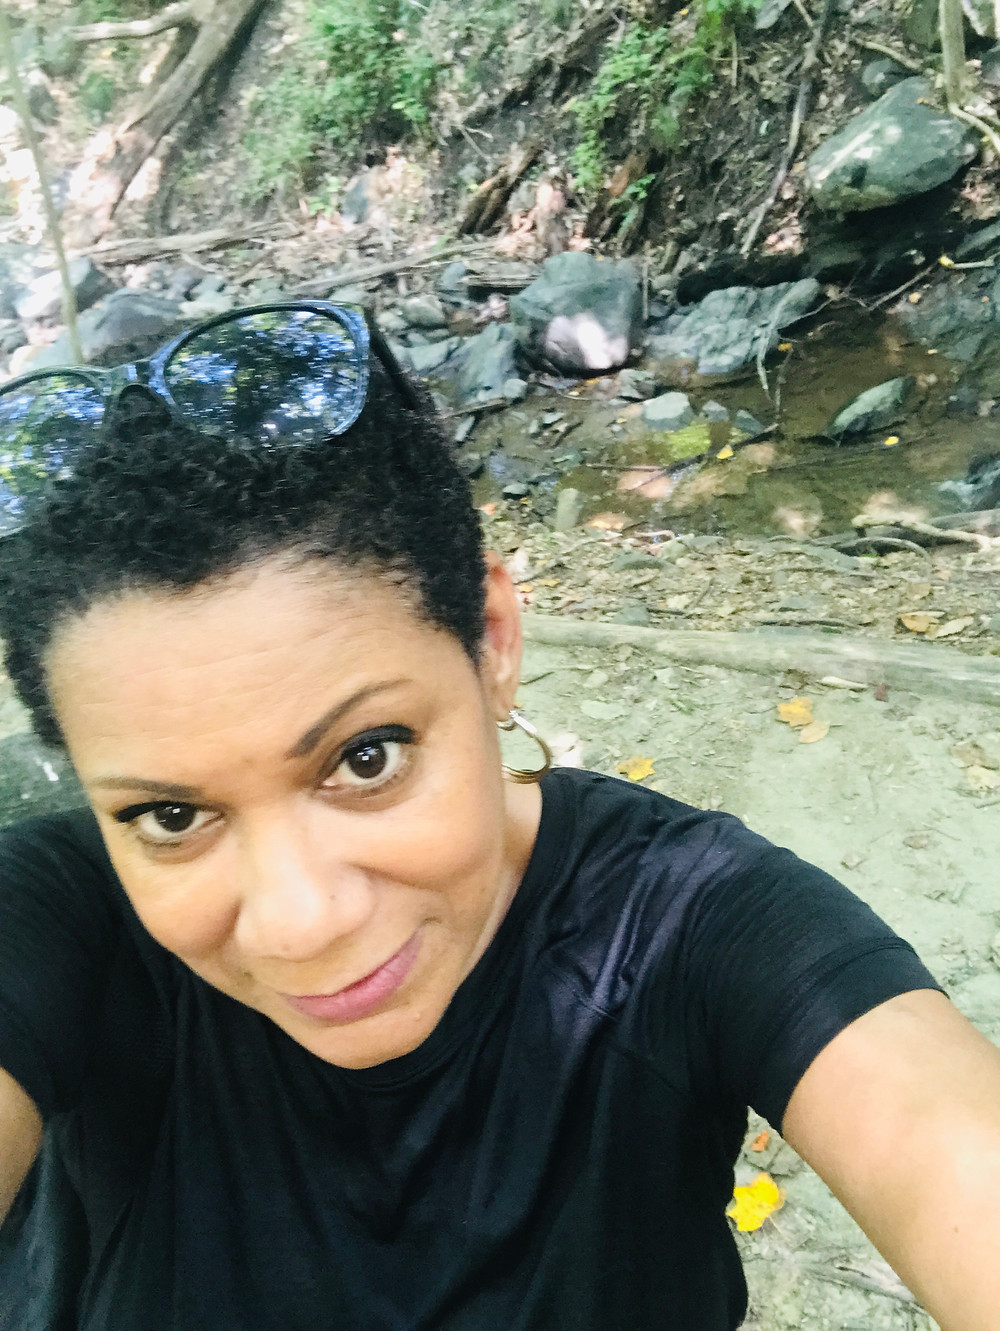 The author is hiking in park and posing in front of a creek.